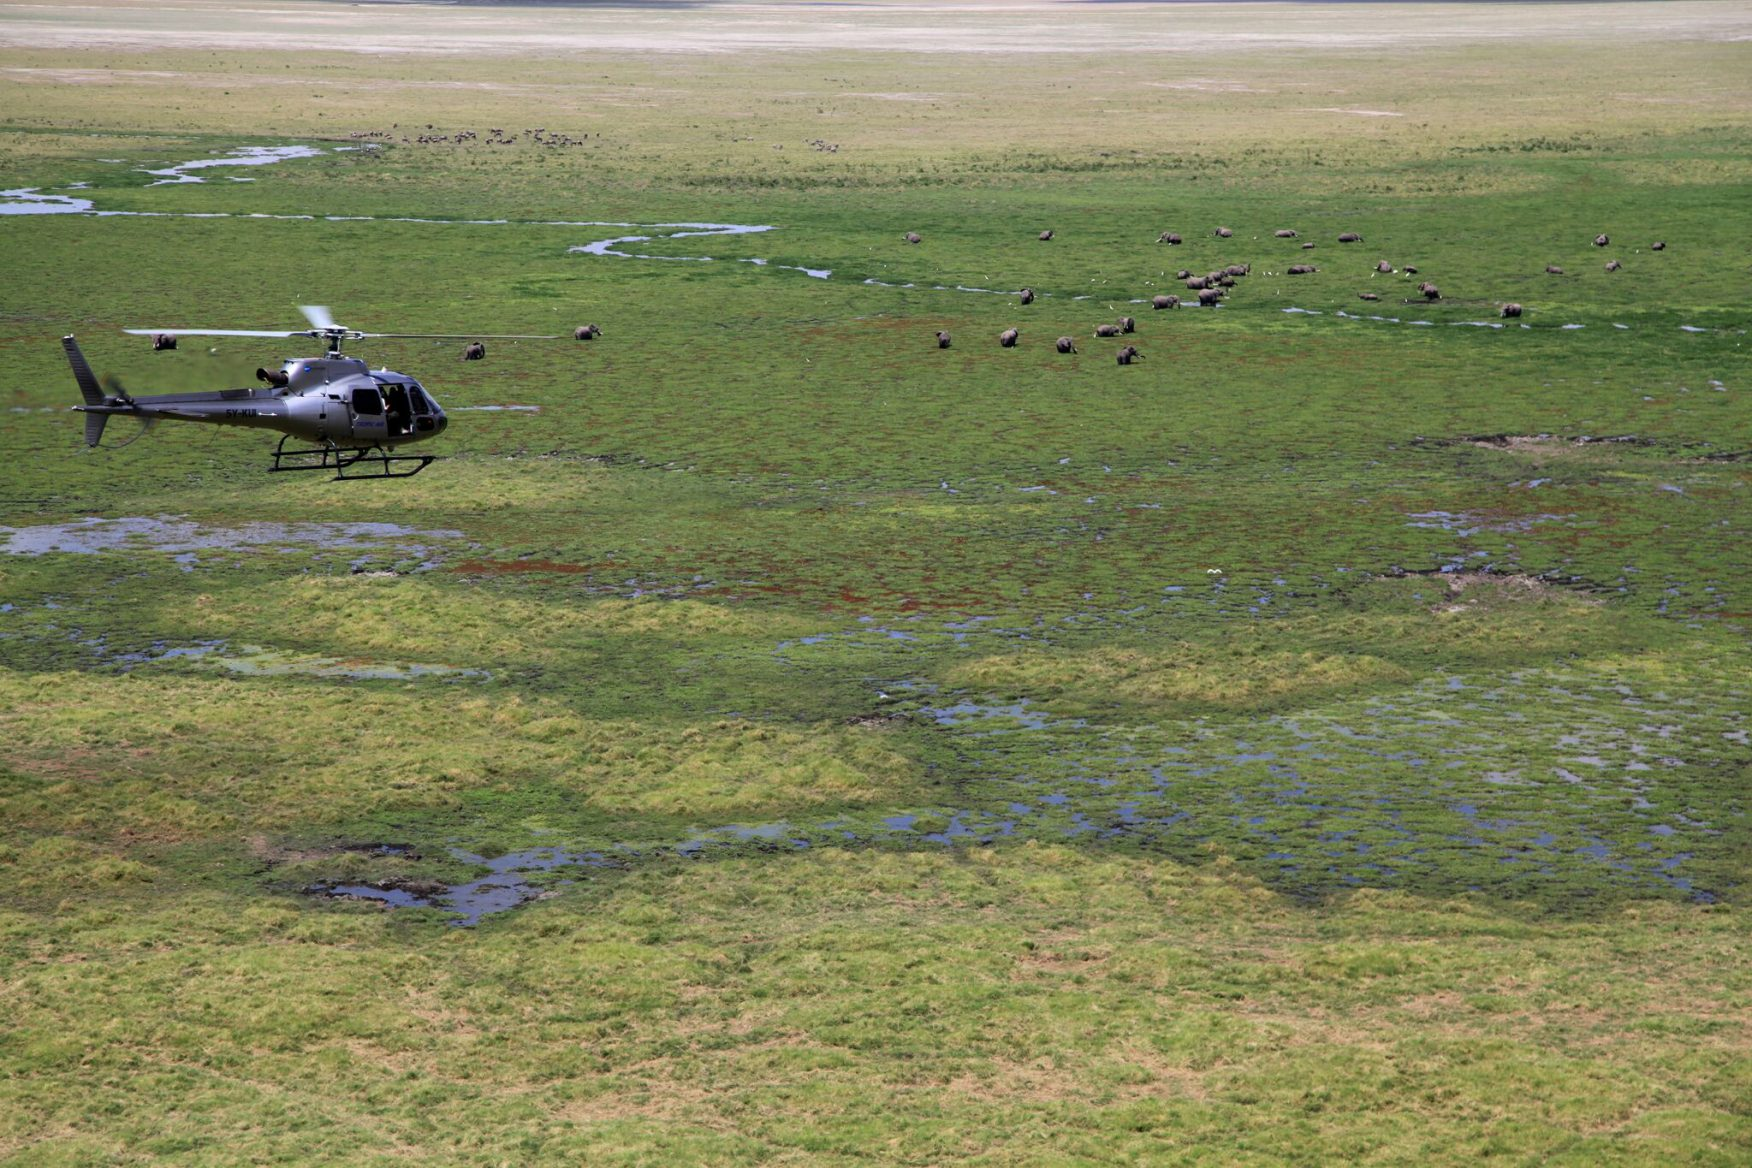 africa-family-safari-9-heli-elephants